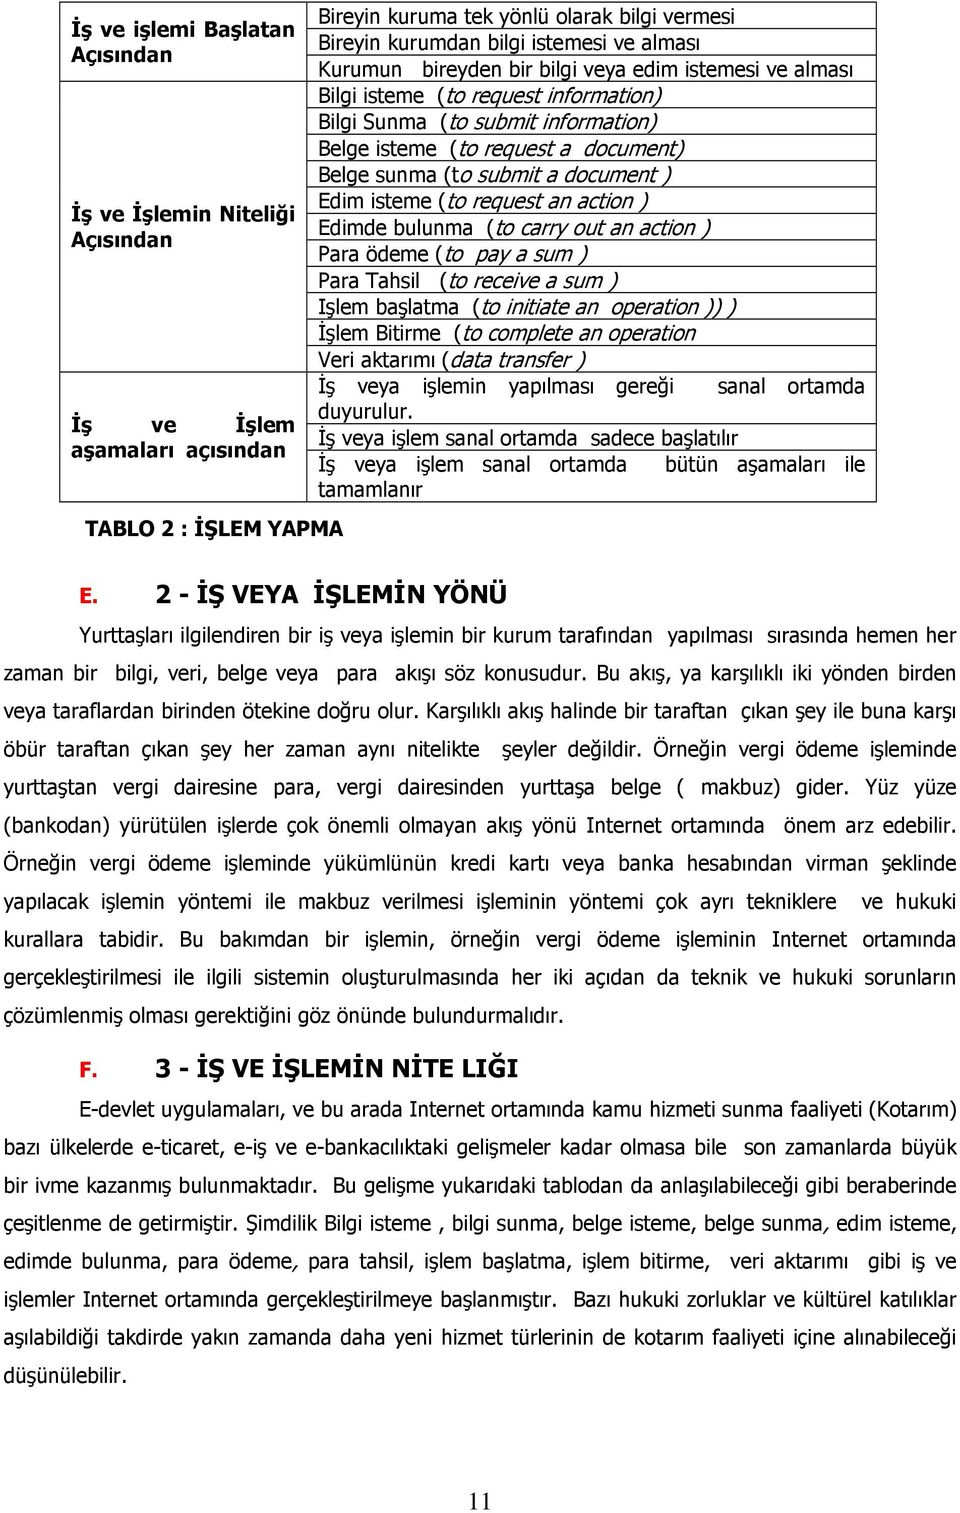 document ) Edim isteme (to request an action ) Edimde bulunma (to carry out an action ) Para ödeme (to pay a sum ) Para Tahsil (to receive a sum ) Işlem başlatma (to initiate an operation )) ) Đşlem